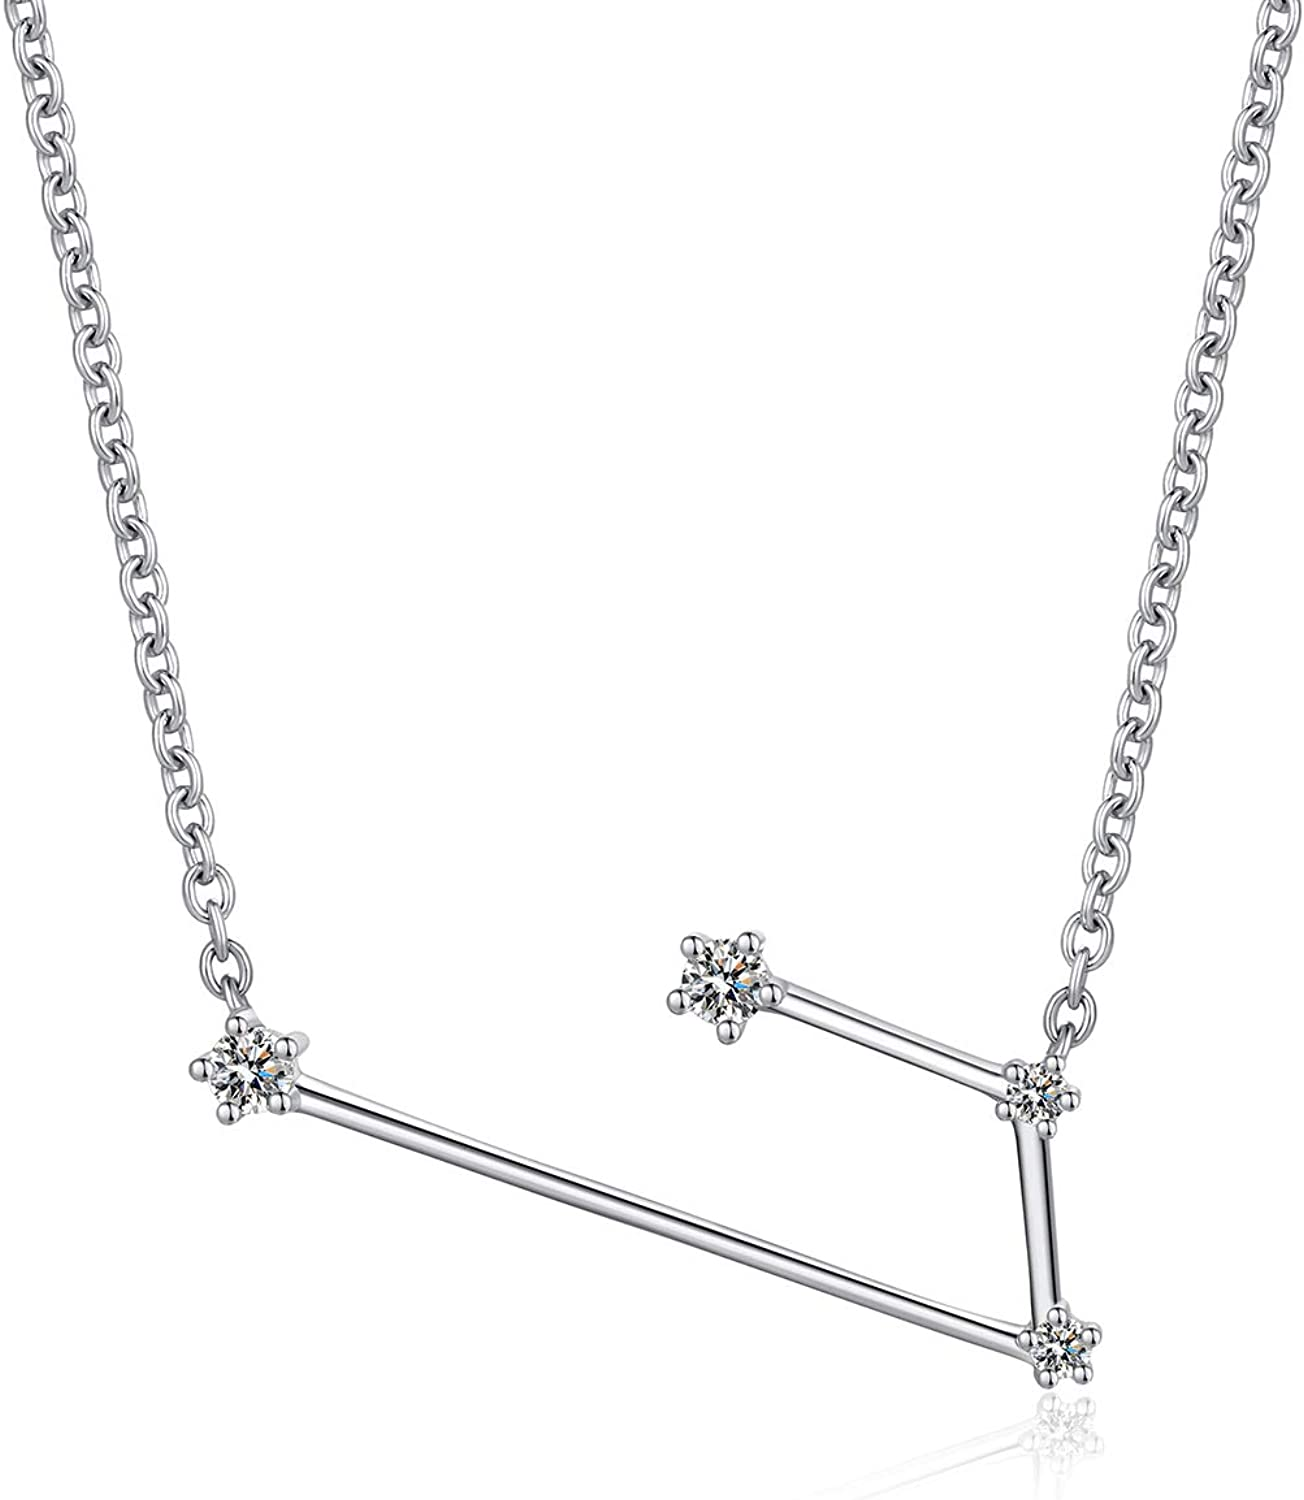 ZDaoBen Womens 12 Horoscope Necklace 925 Sterling Silver Zodiac Sign 12 Constellation Necklace Astrology Color CZ Pendant Necklace Star Necklace Birthstone Necklace Birthday Gift Chain:46cm/18